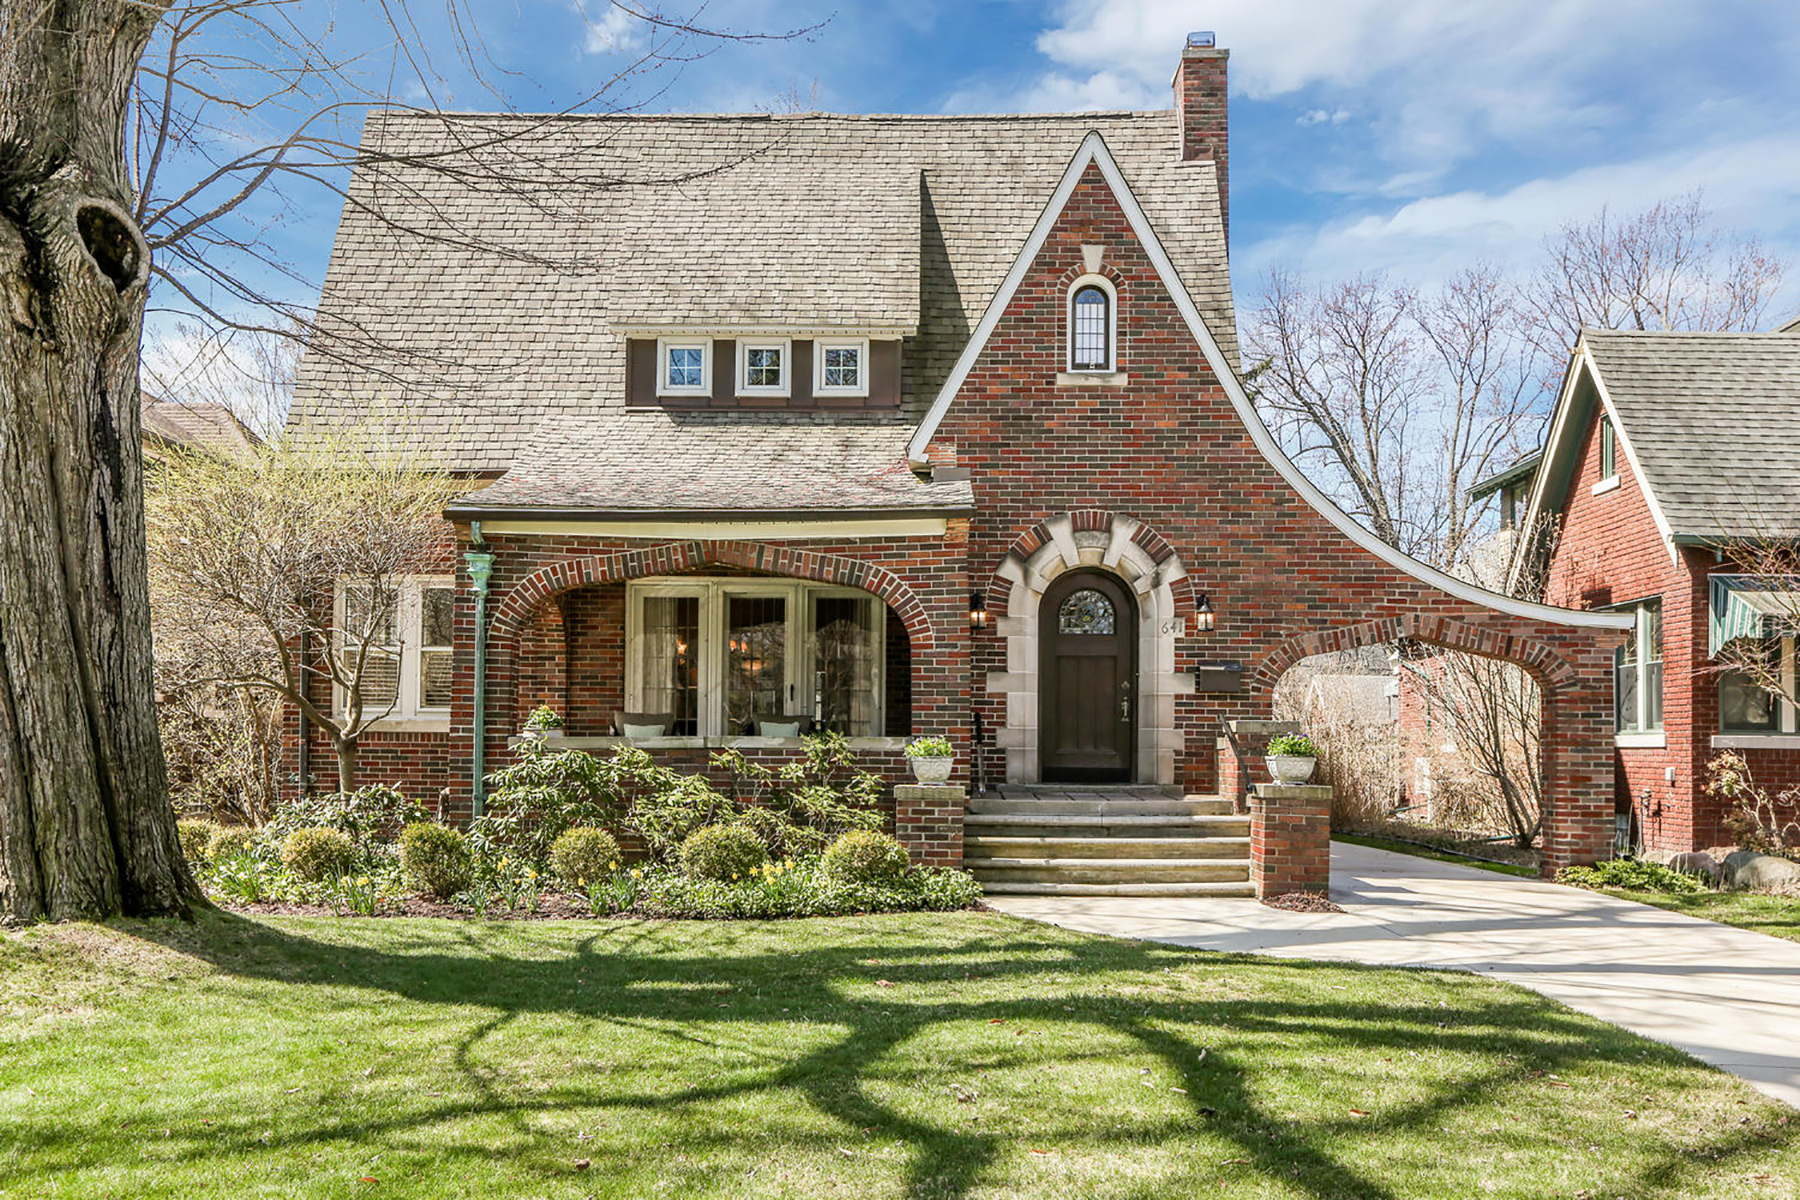 Single Family Homes for Active at Grosse Pointe 641 Washington Road Grosse Pointe, Michigan 48230 United States